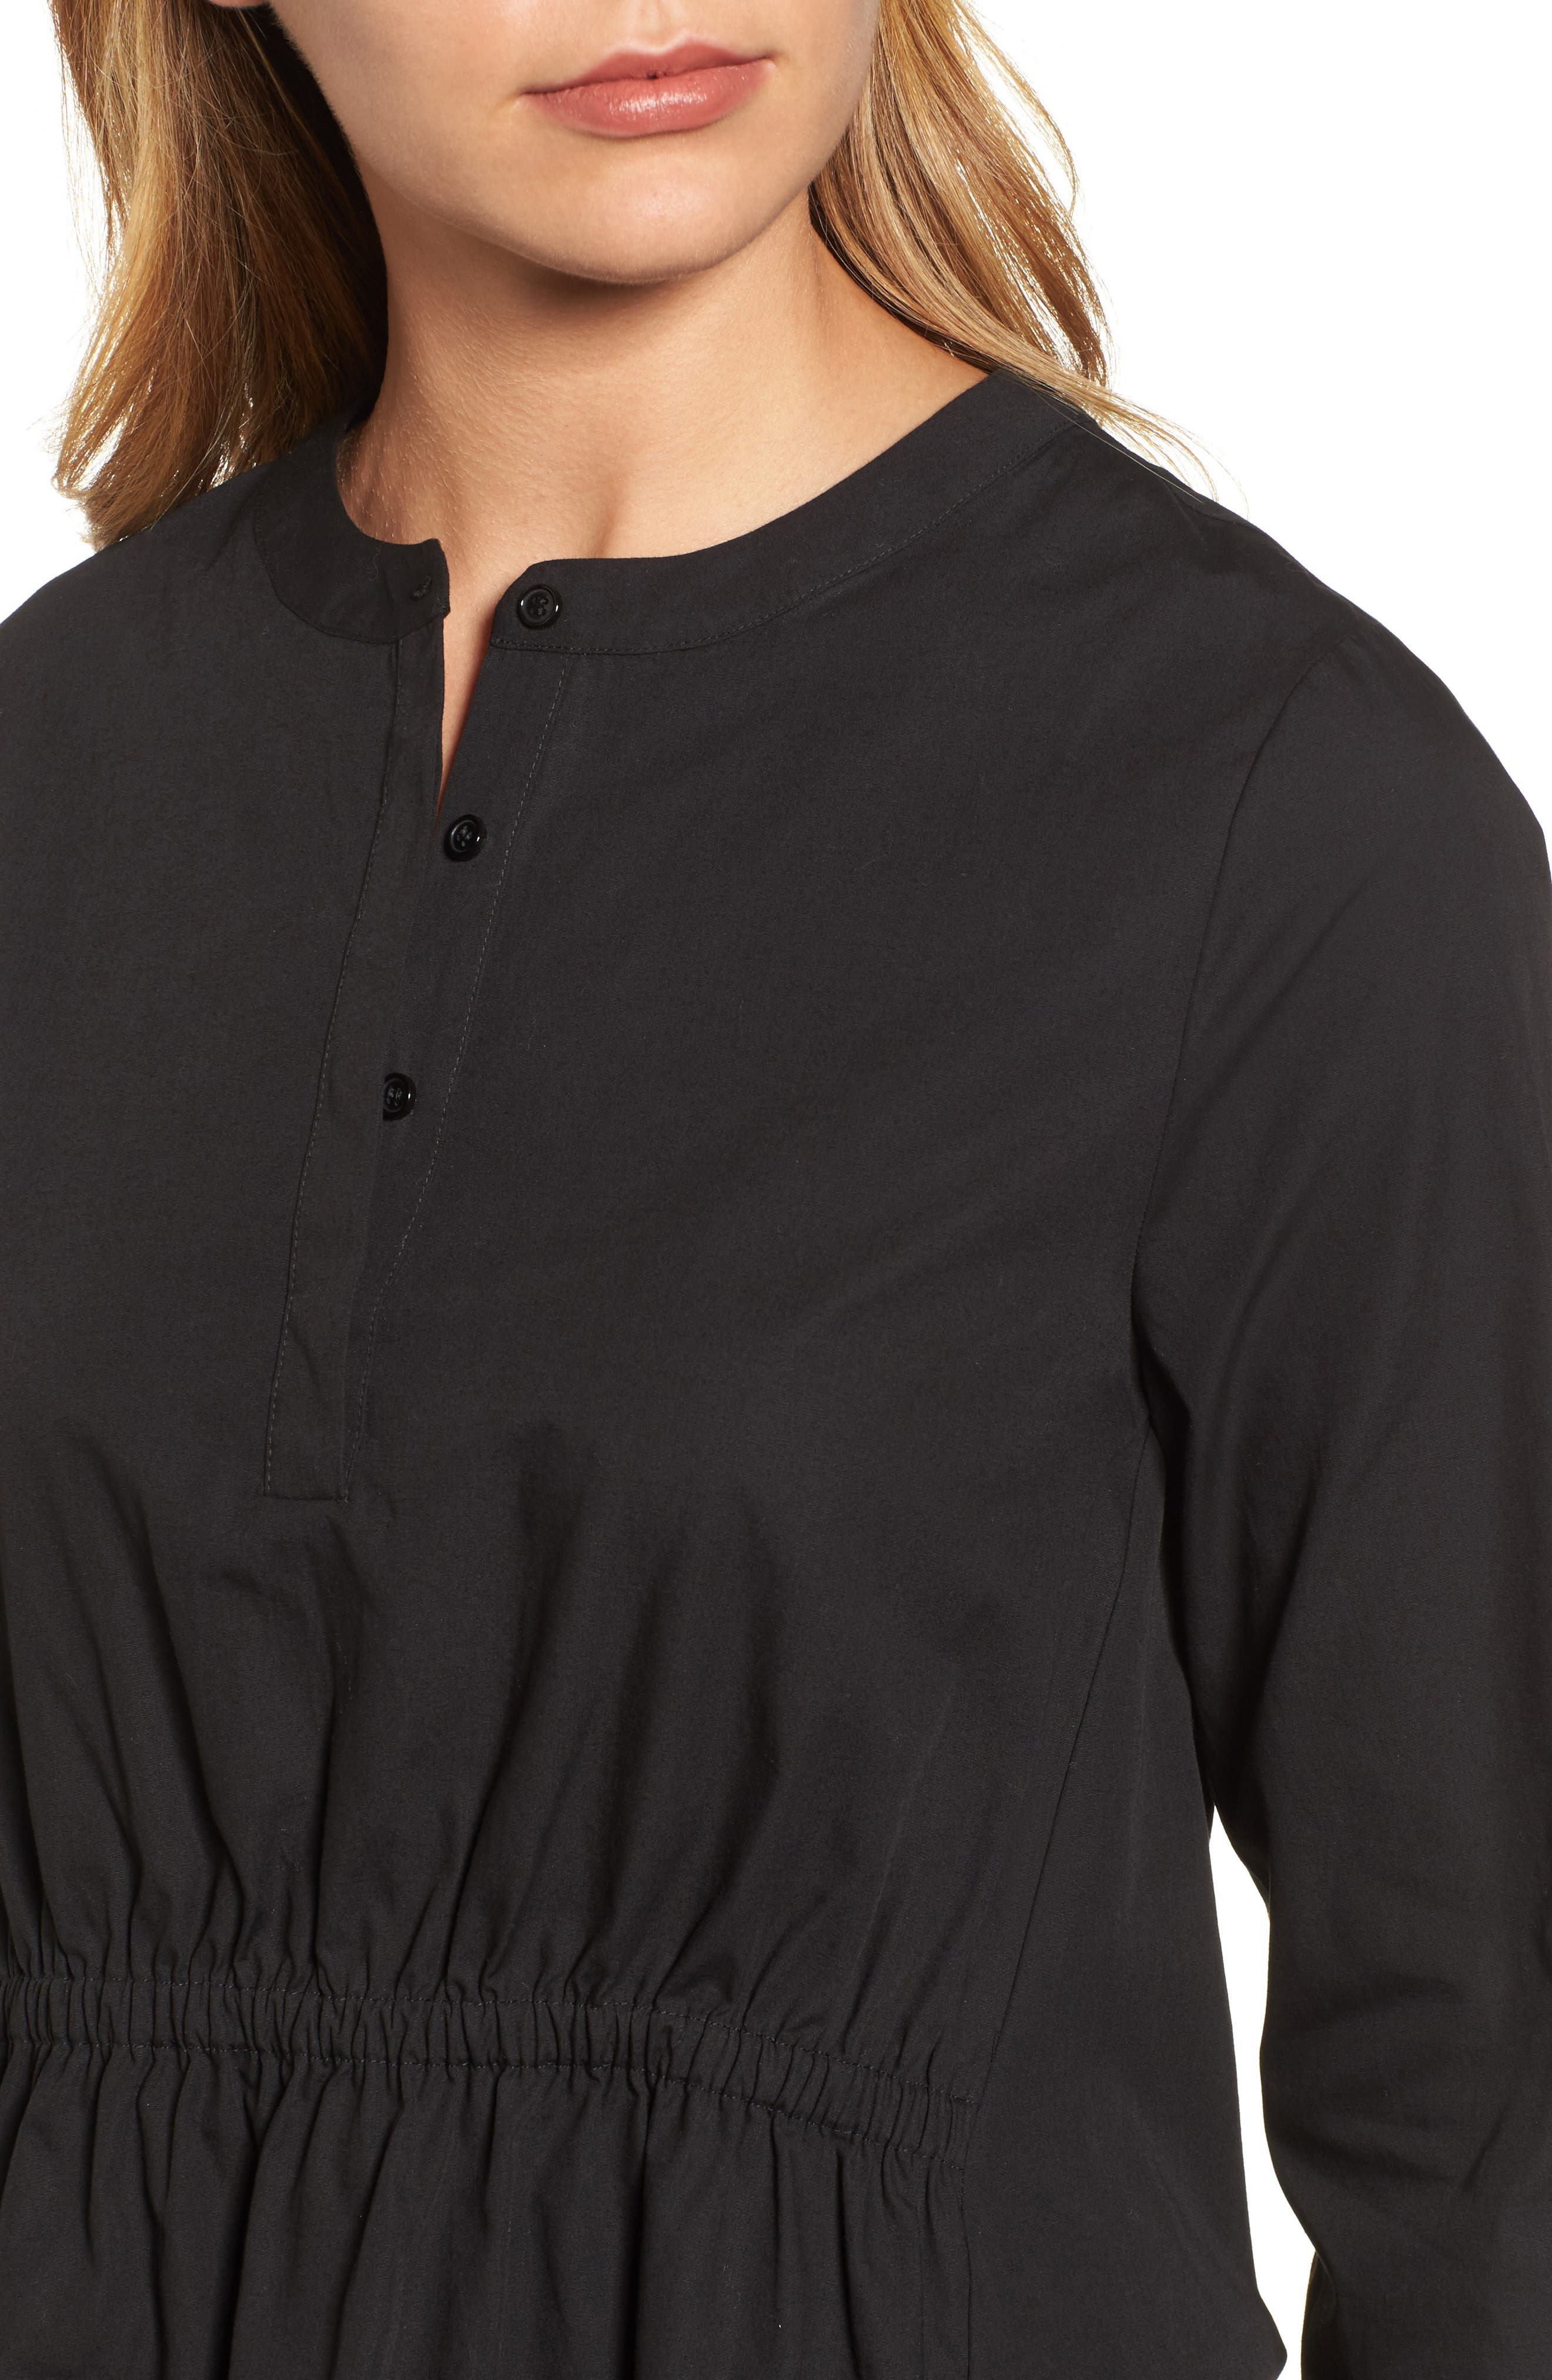 Cinched Front Peplum Top,                             Alternate thumbnail 4, color,                             001